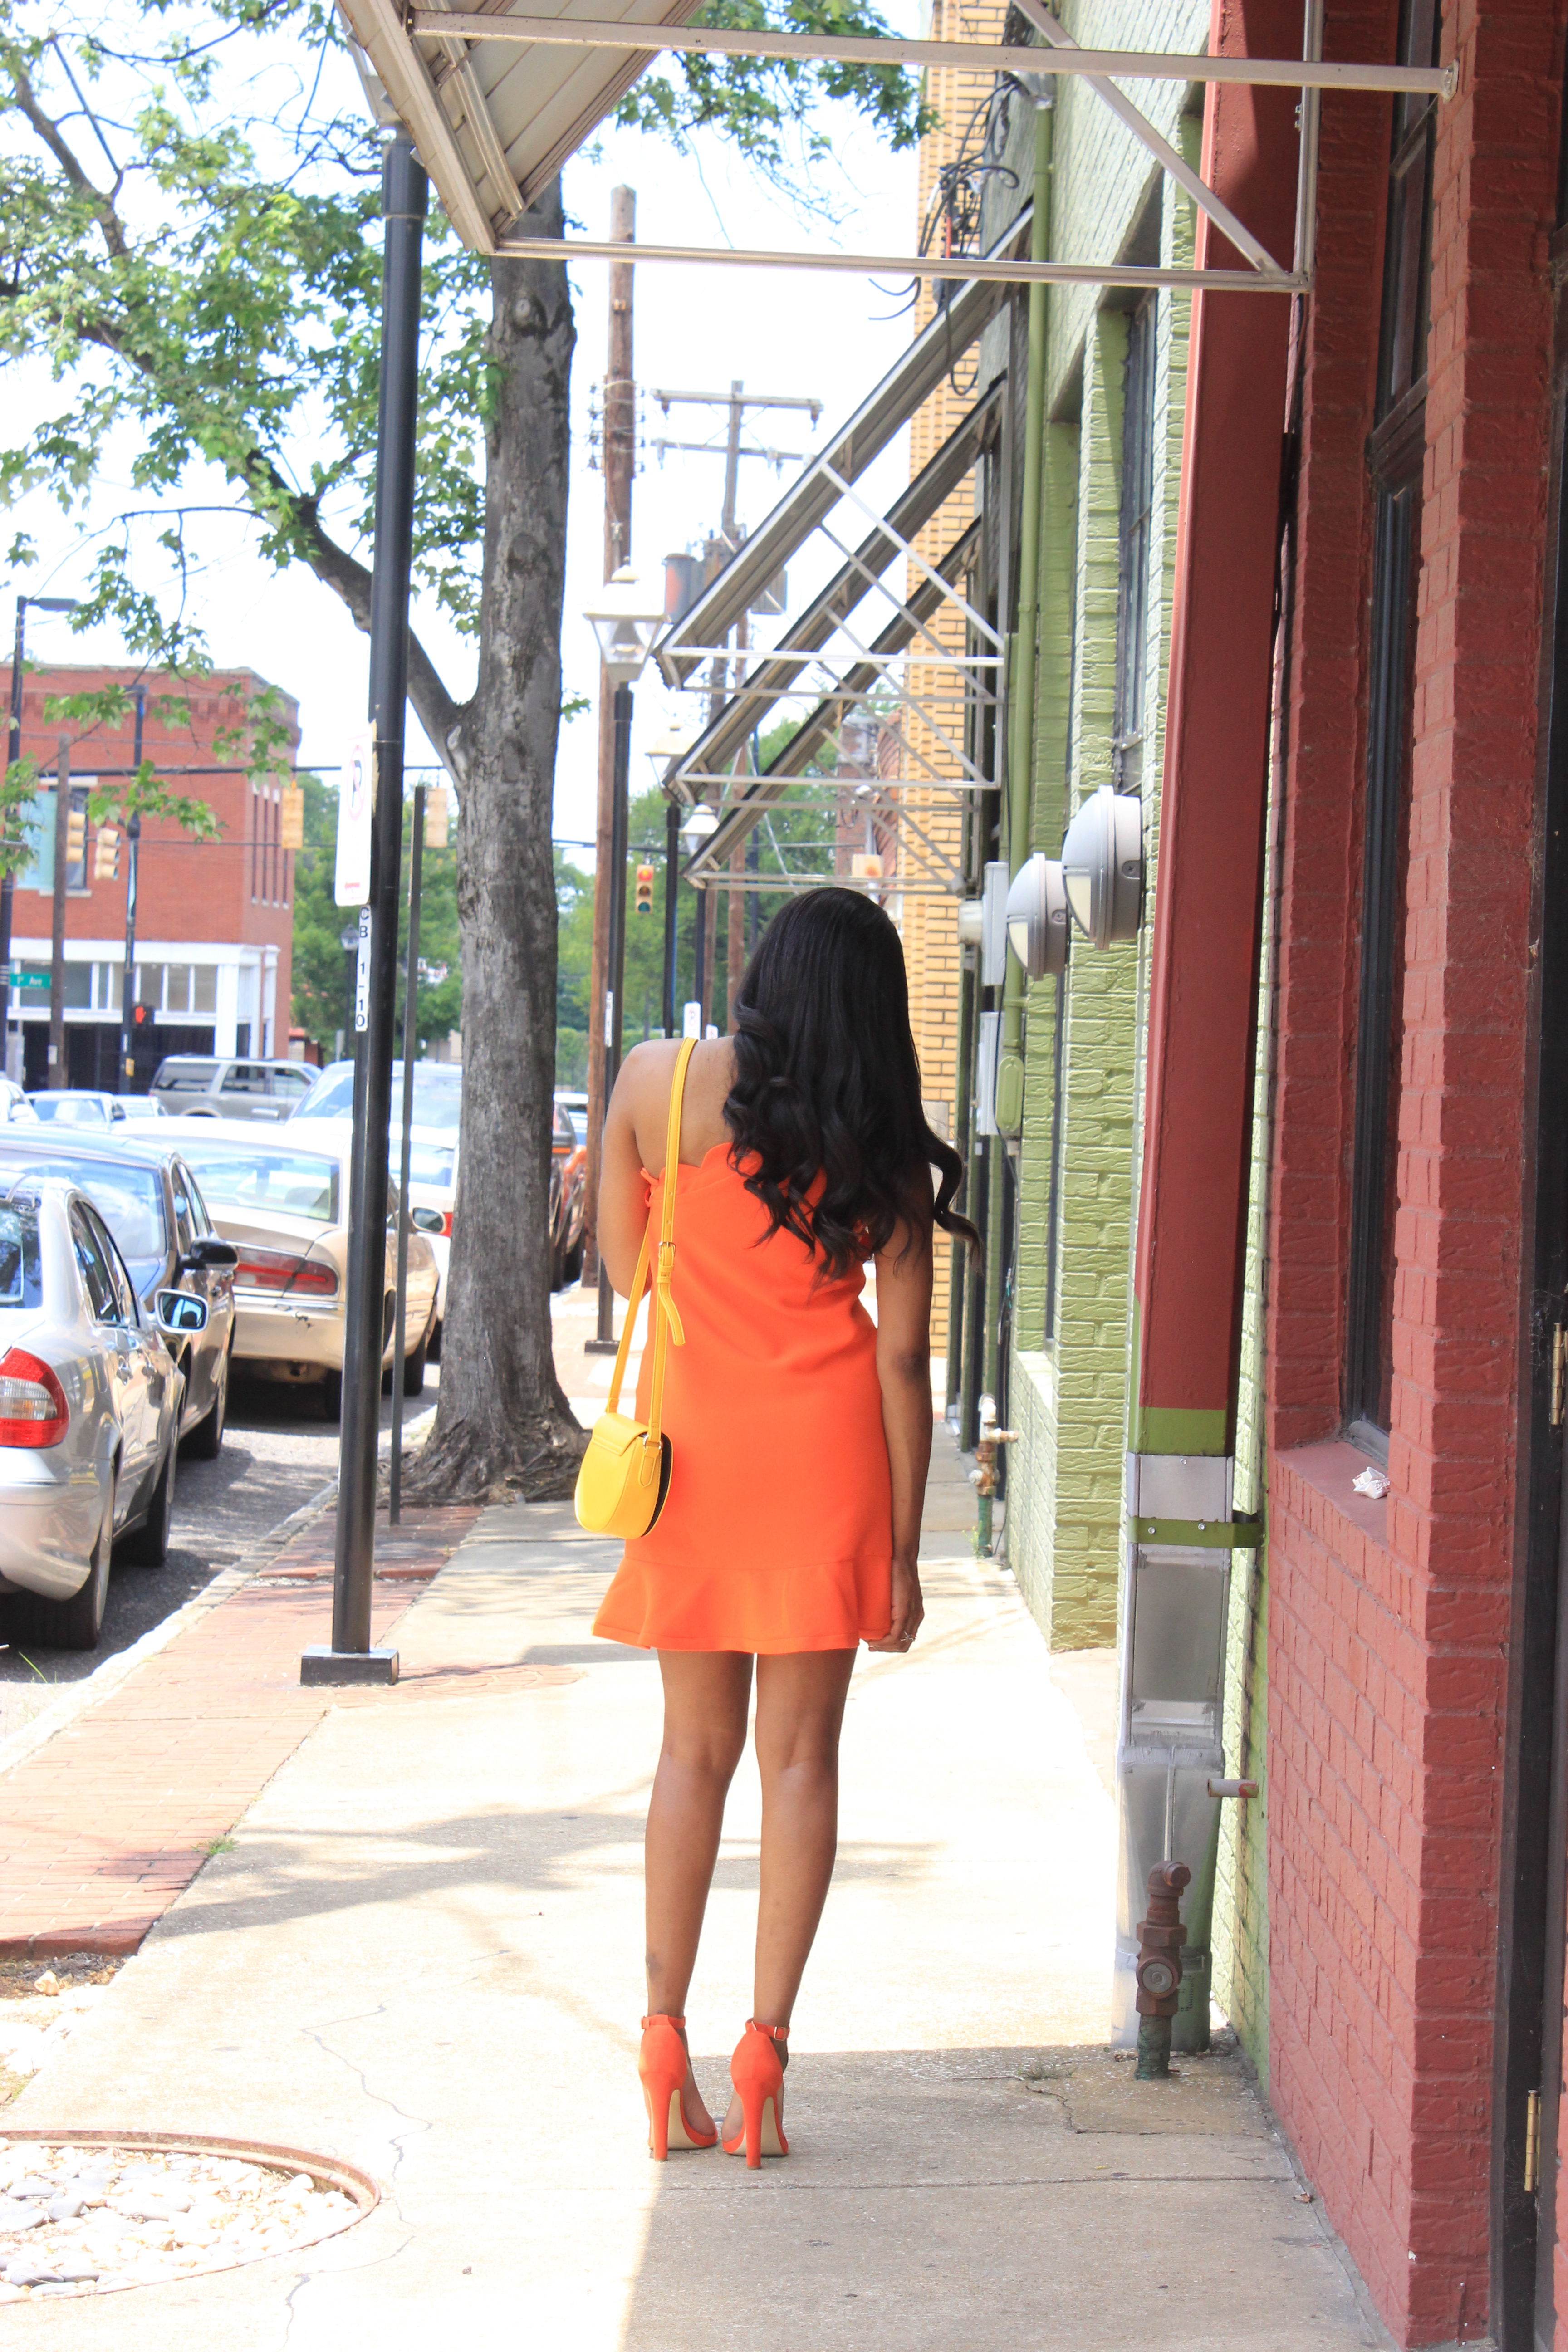 Style-Files-Orange-One Shoulder Dress-with-Bow and-Scallop-Trim-Victoria Beckham-for-Target-How-to-wear-victoria-beckham-for-target-Victoria-Beckham-for-Target-Review-Justfab-orange-kati-ankle-strap-sandals-oohlalablog-14